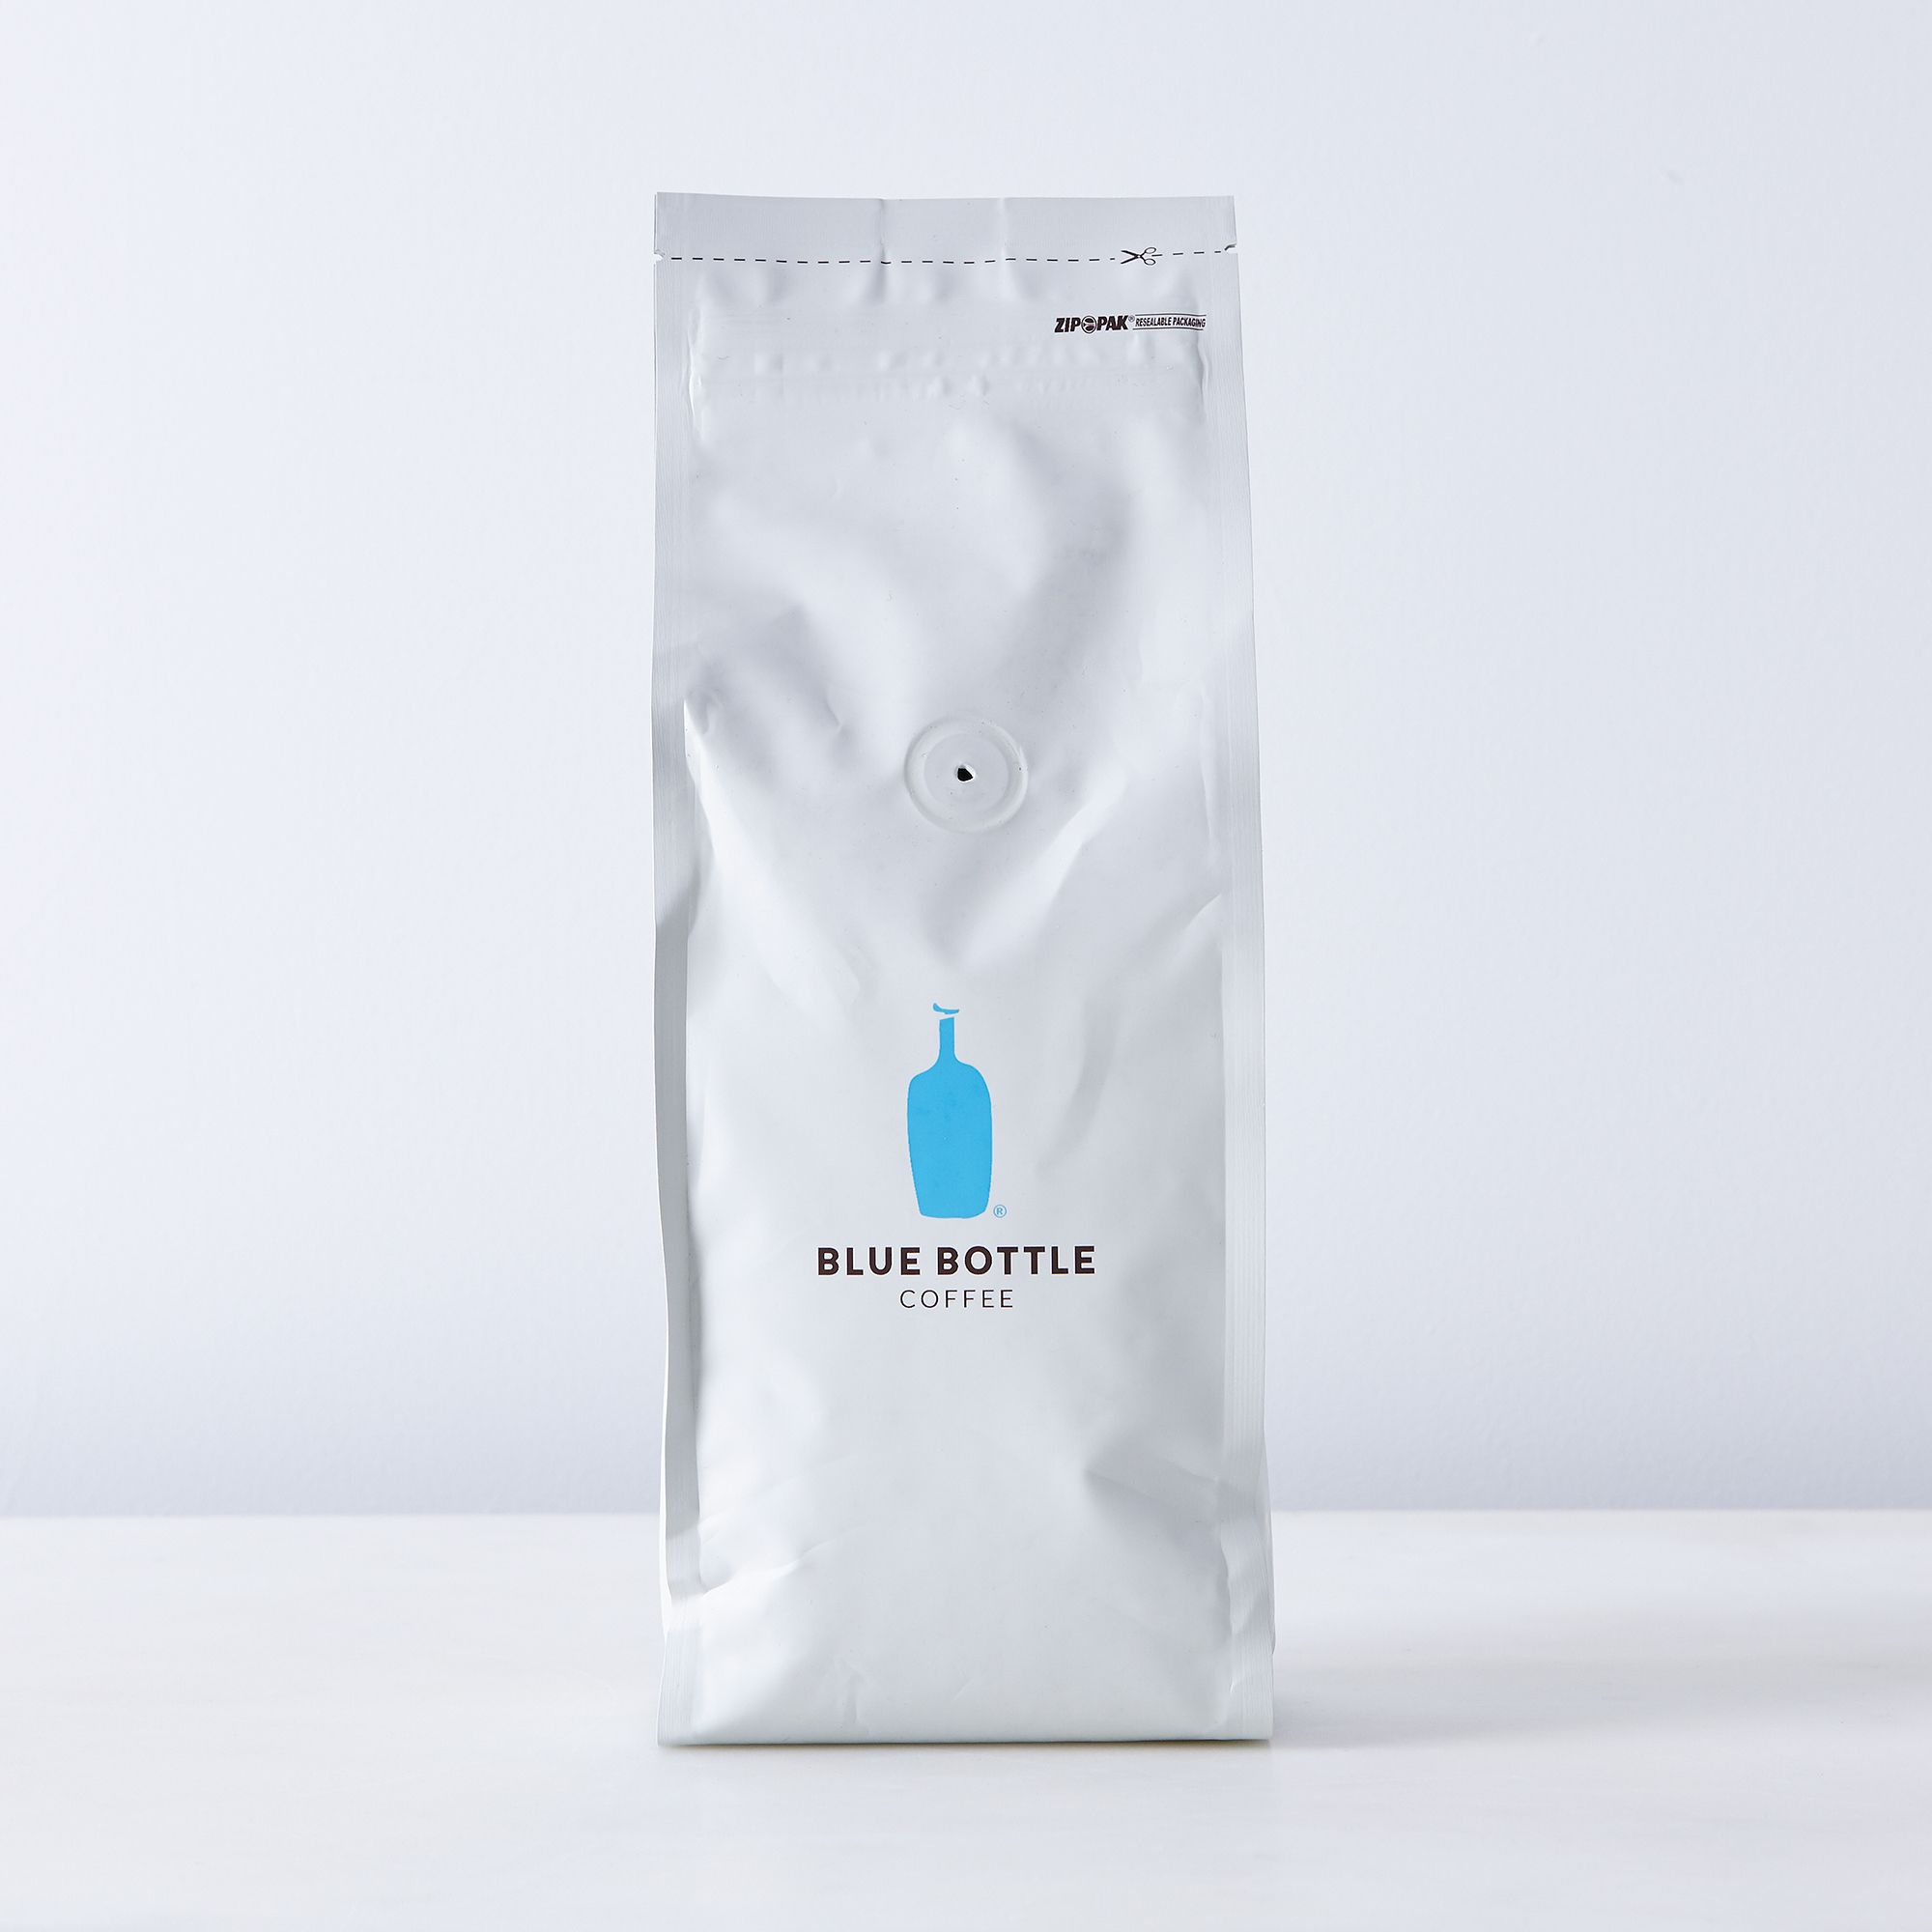 9aa7217a b891 47c7 ae82 c143db2cdff8  2016 0708 blue bottle subscription silo rocky luten 077